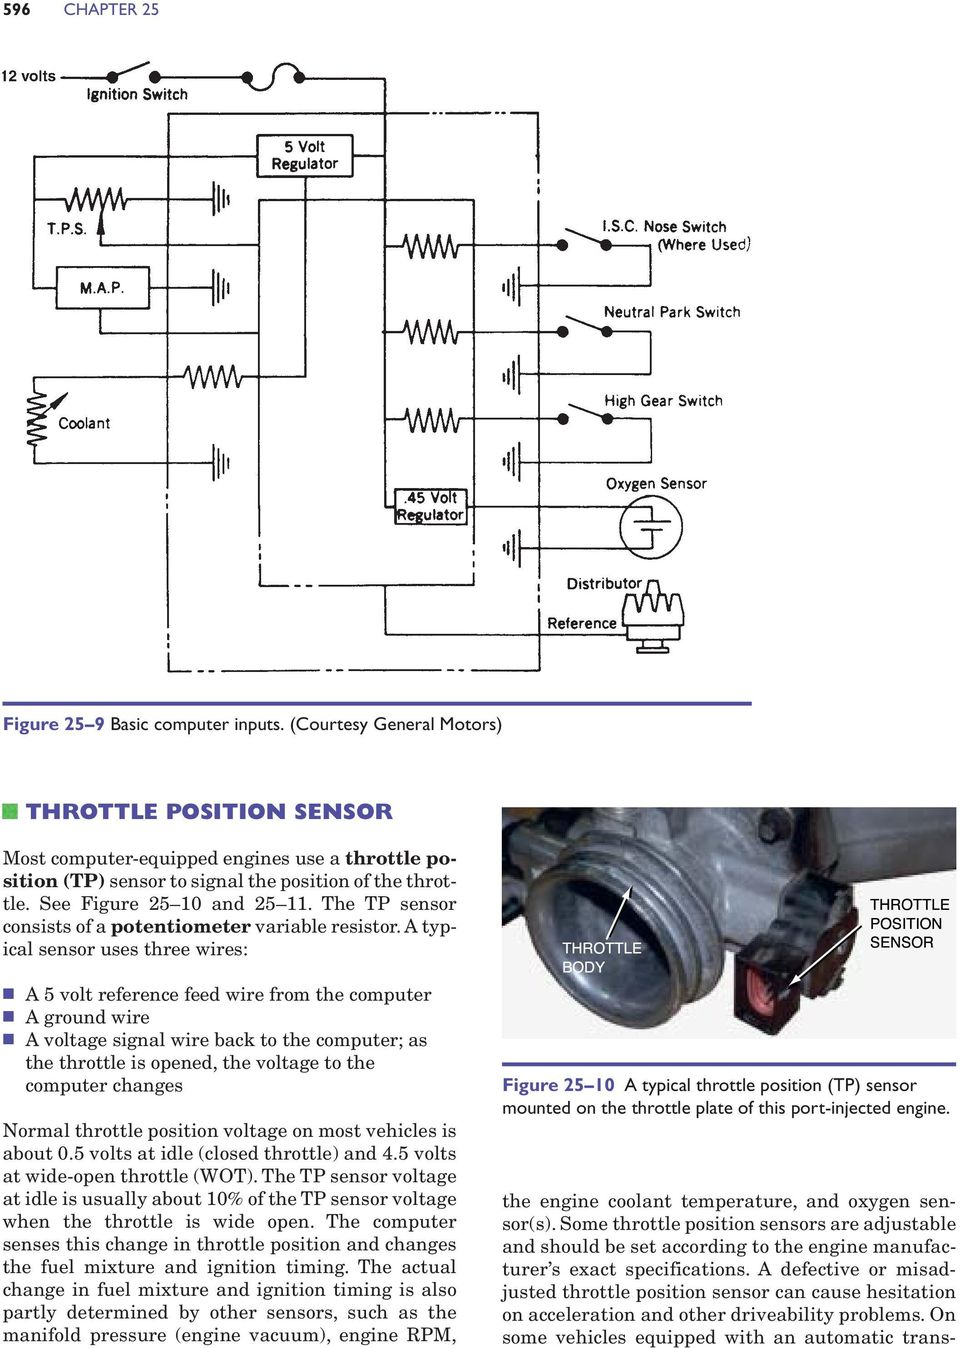 Computers And Sensors Operation Diagnosis Service Pdf Fig 2 Engine Coolant Temperature Ect Sensor Wiring Diagram The Tp Consists Of A Potentiometer Variable Resistor